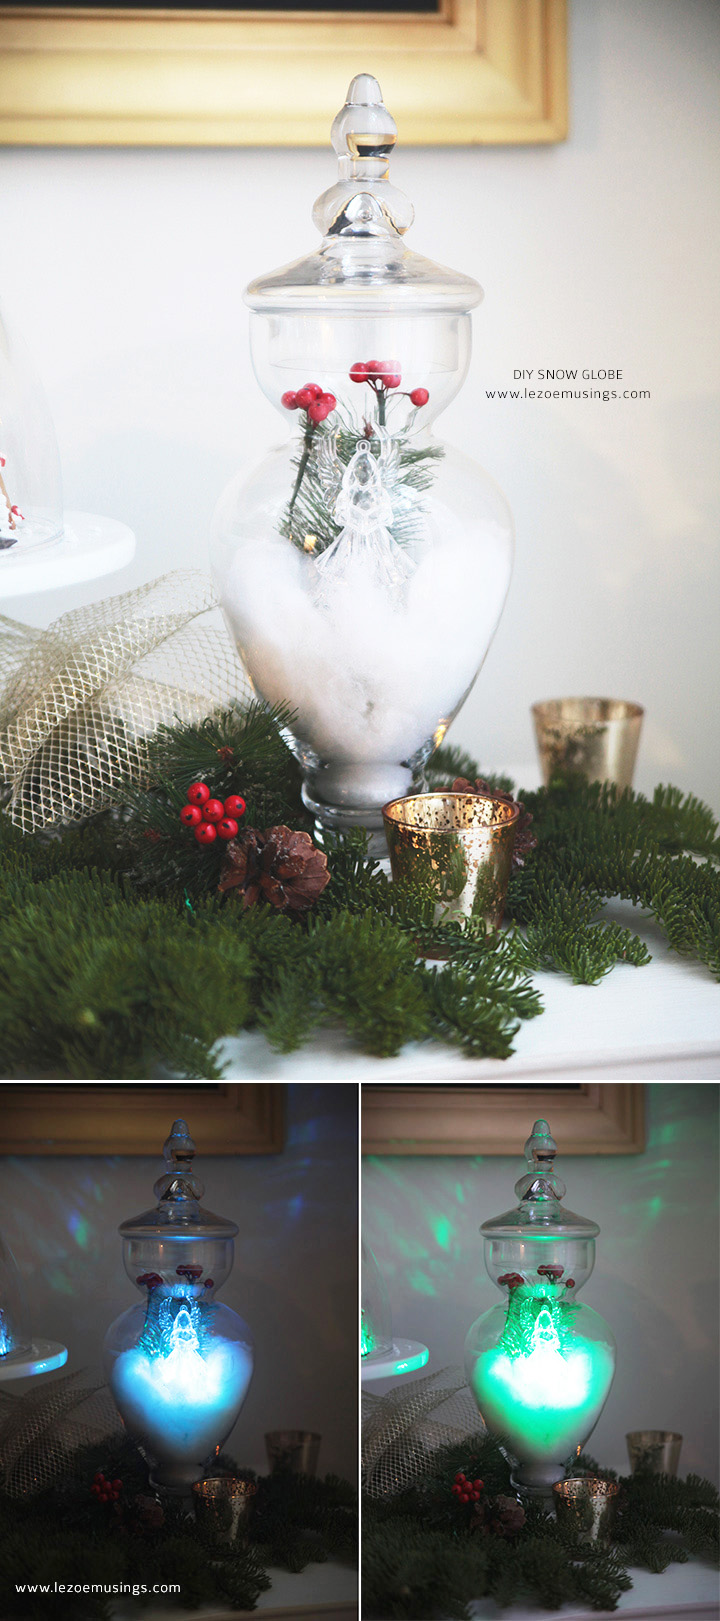 DIY Snow Globe Village by Le Zoe Musings